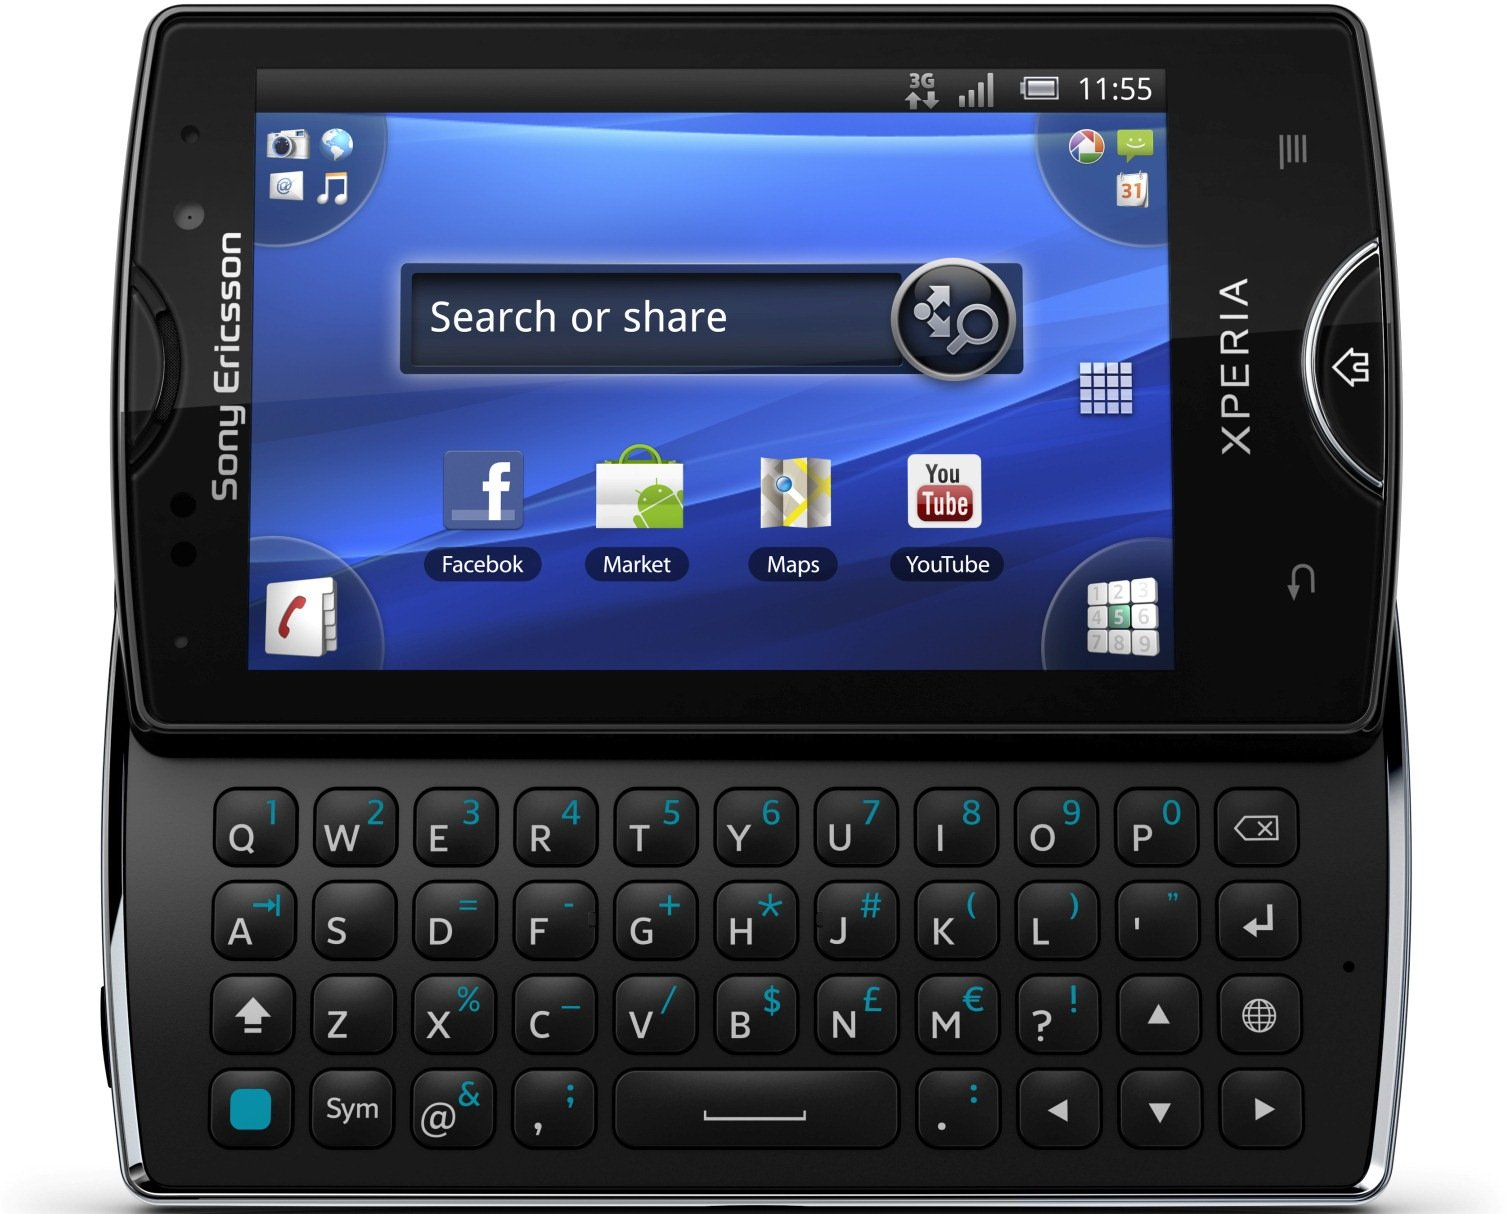 sony ericsson xperia mini pro specs review release date phonesdata. Black Bedroom Furniture Sets. Home Design Ideas